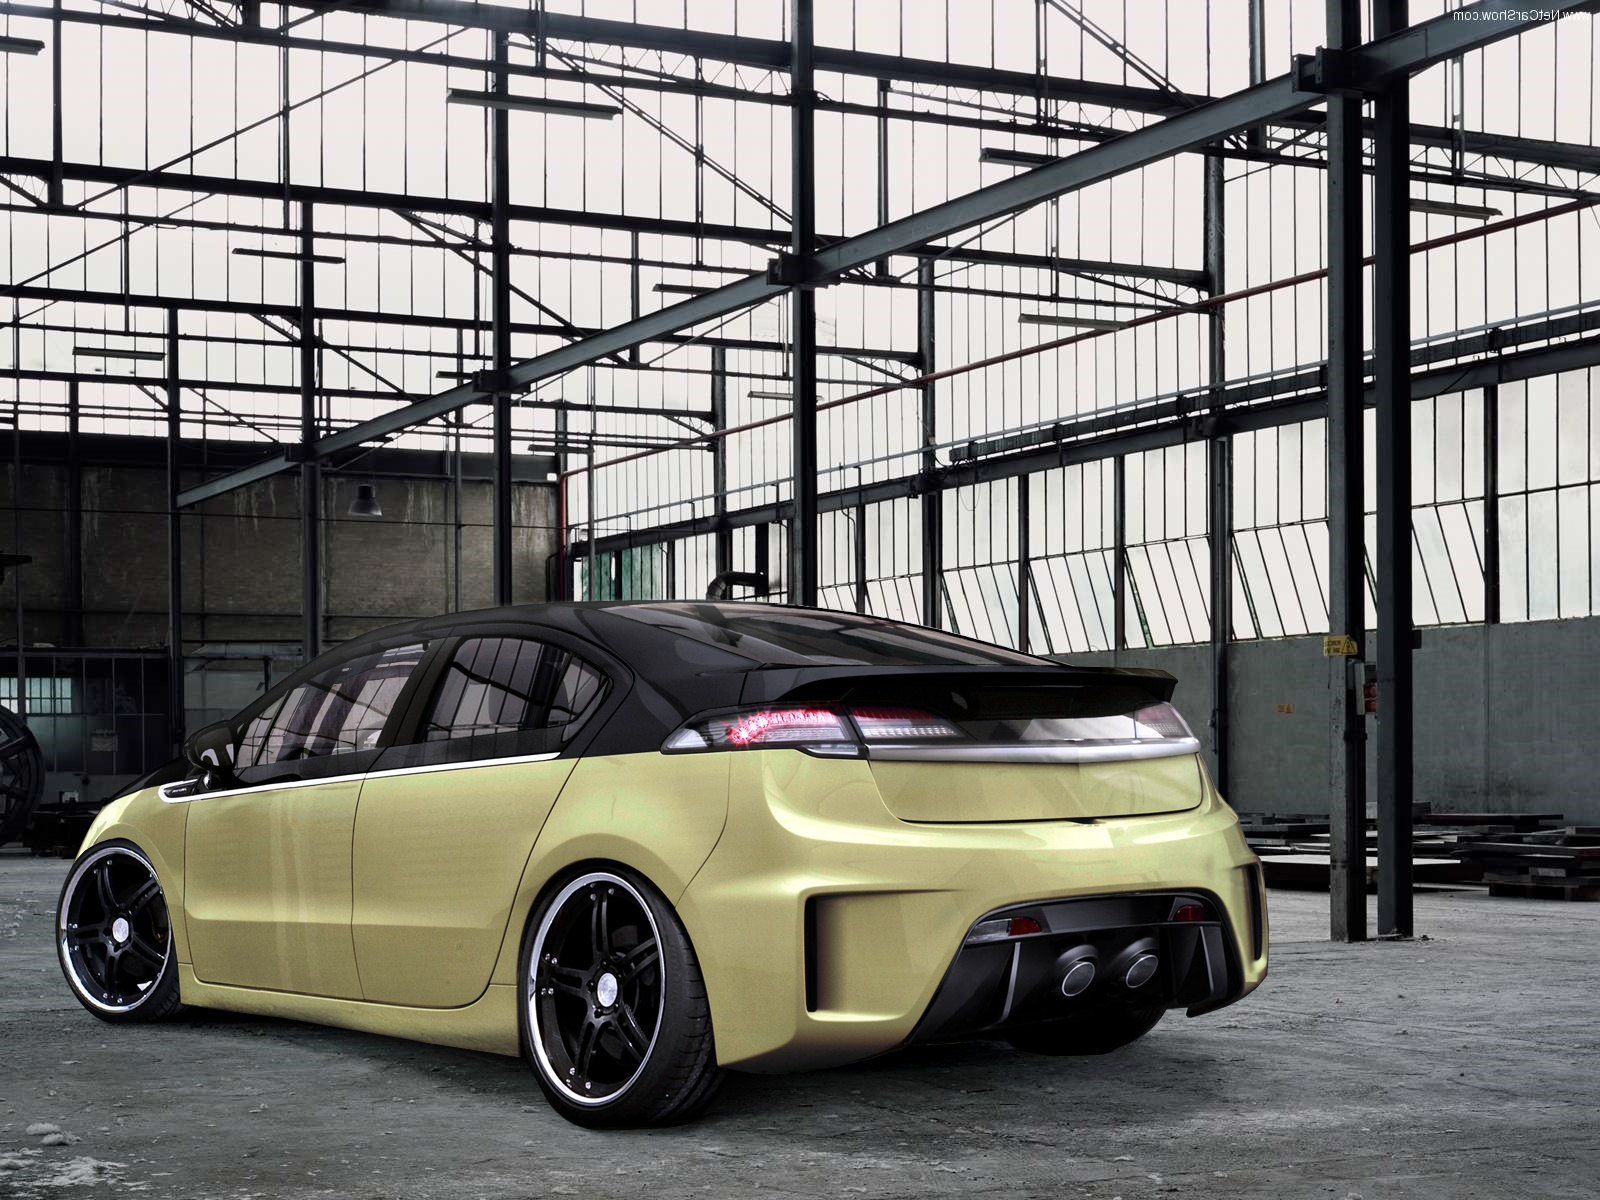 Gallery For > Opel Ampera Tuning